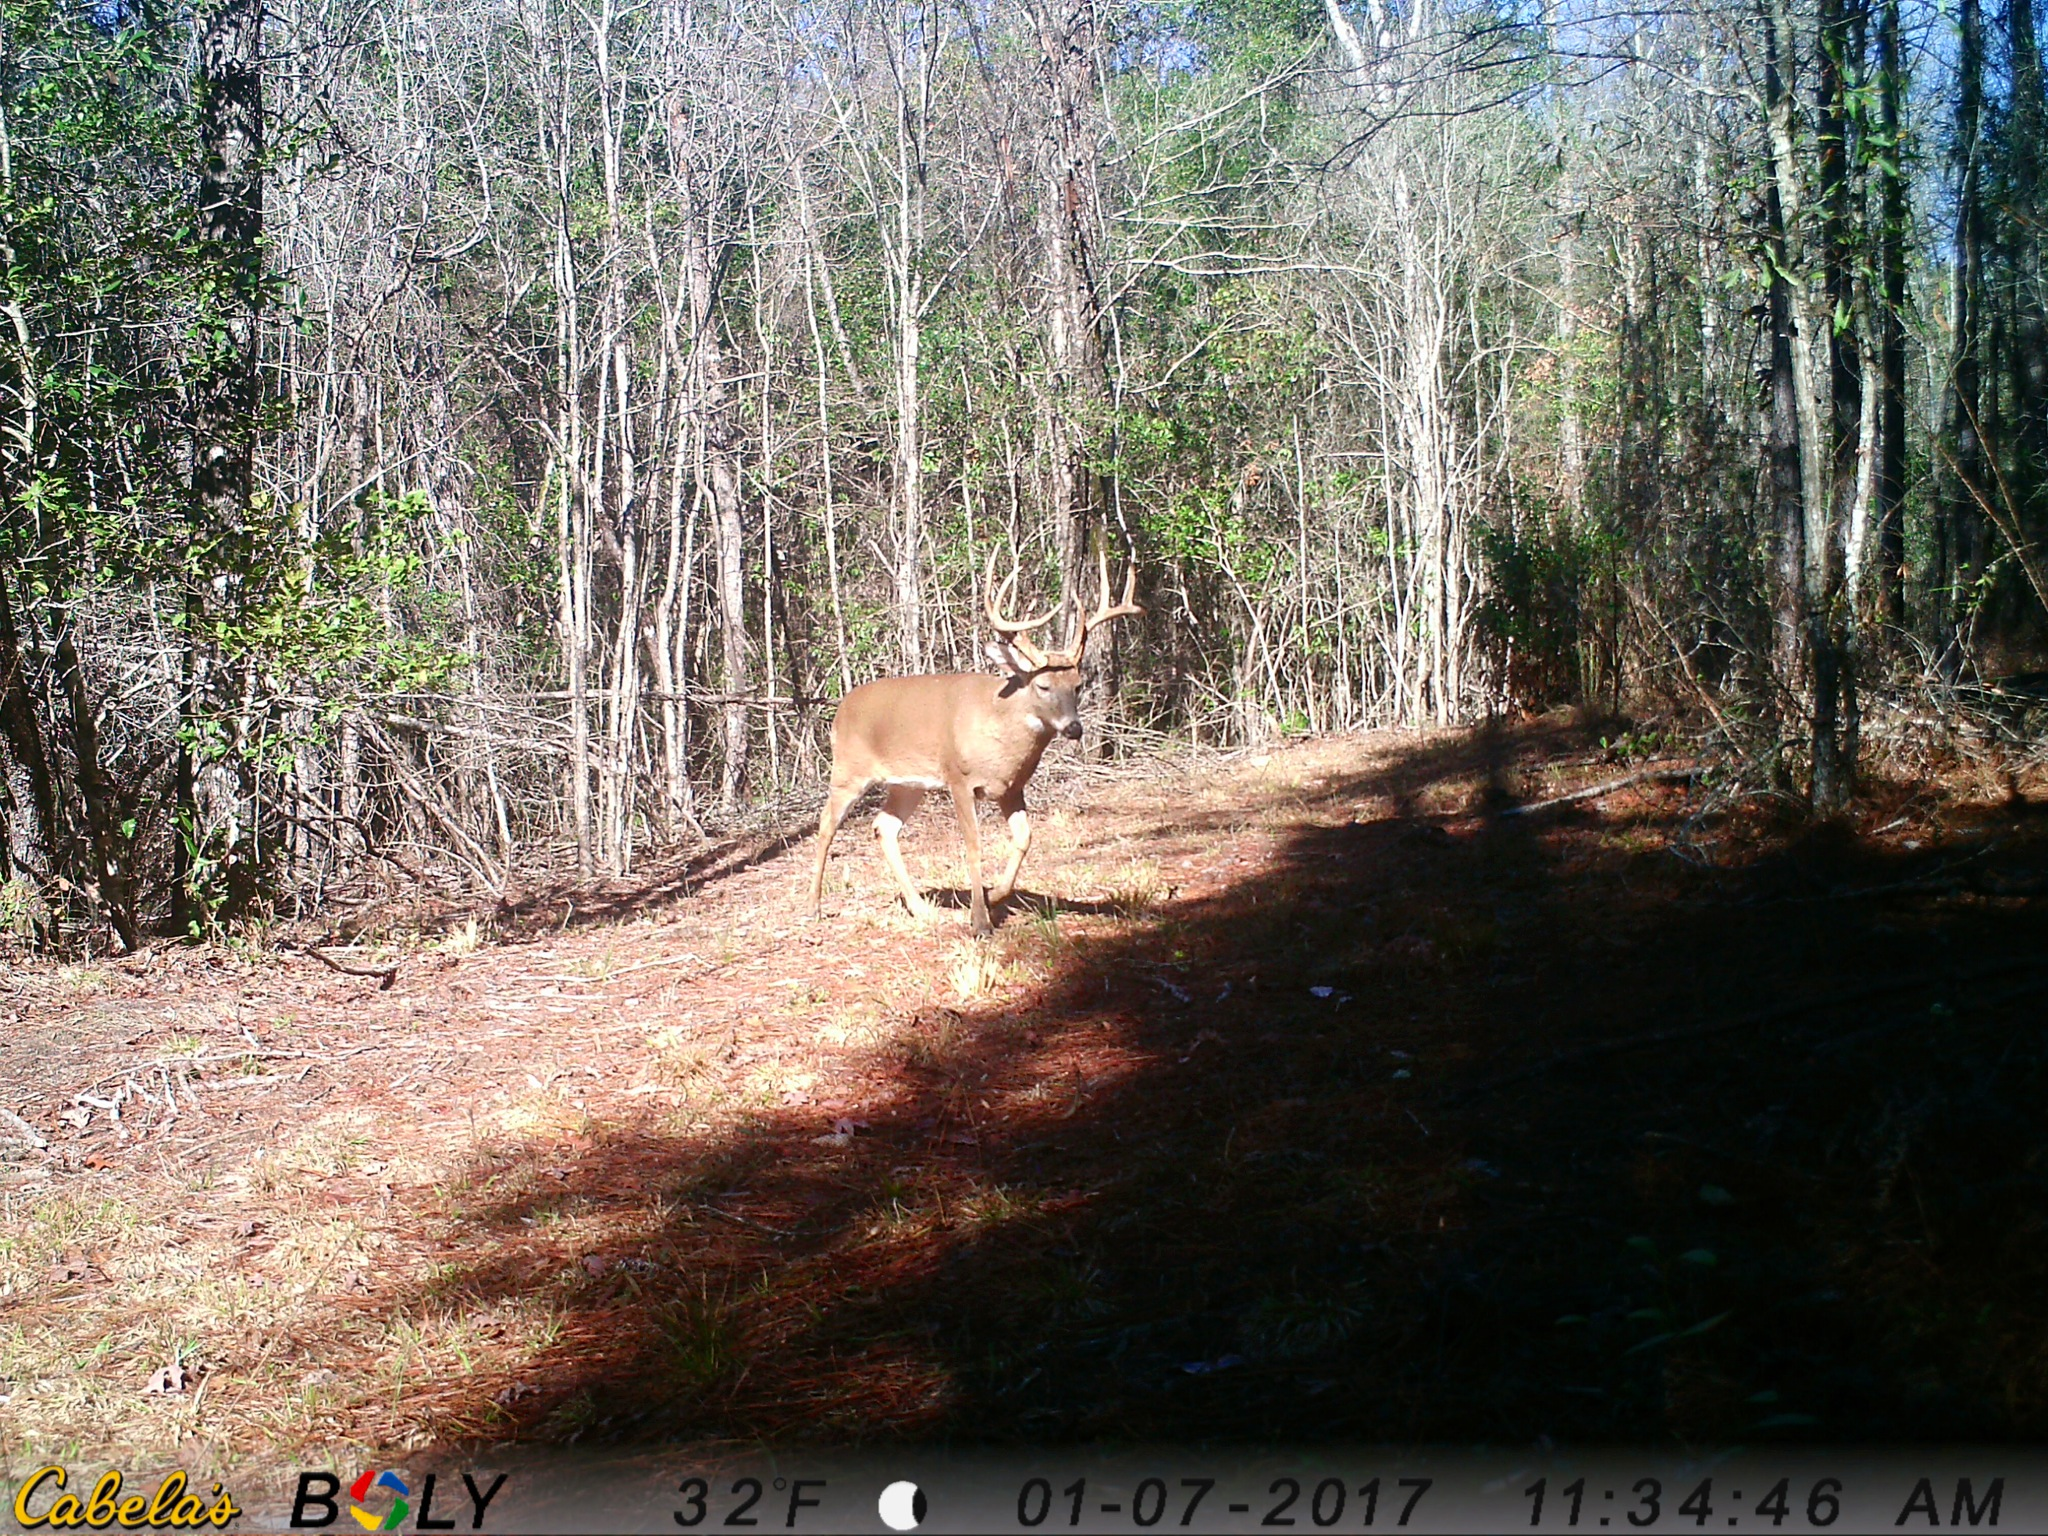 Another deer from a game camera